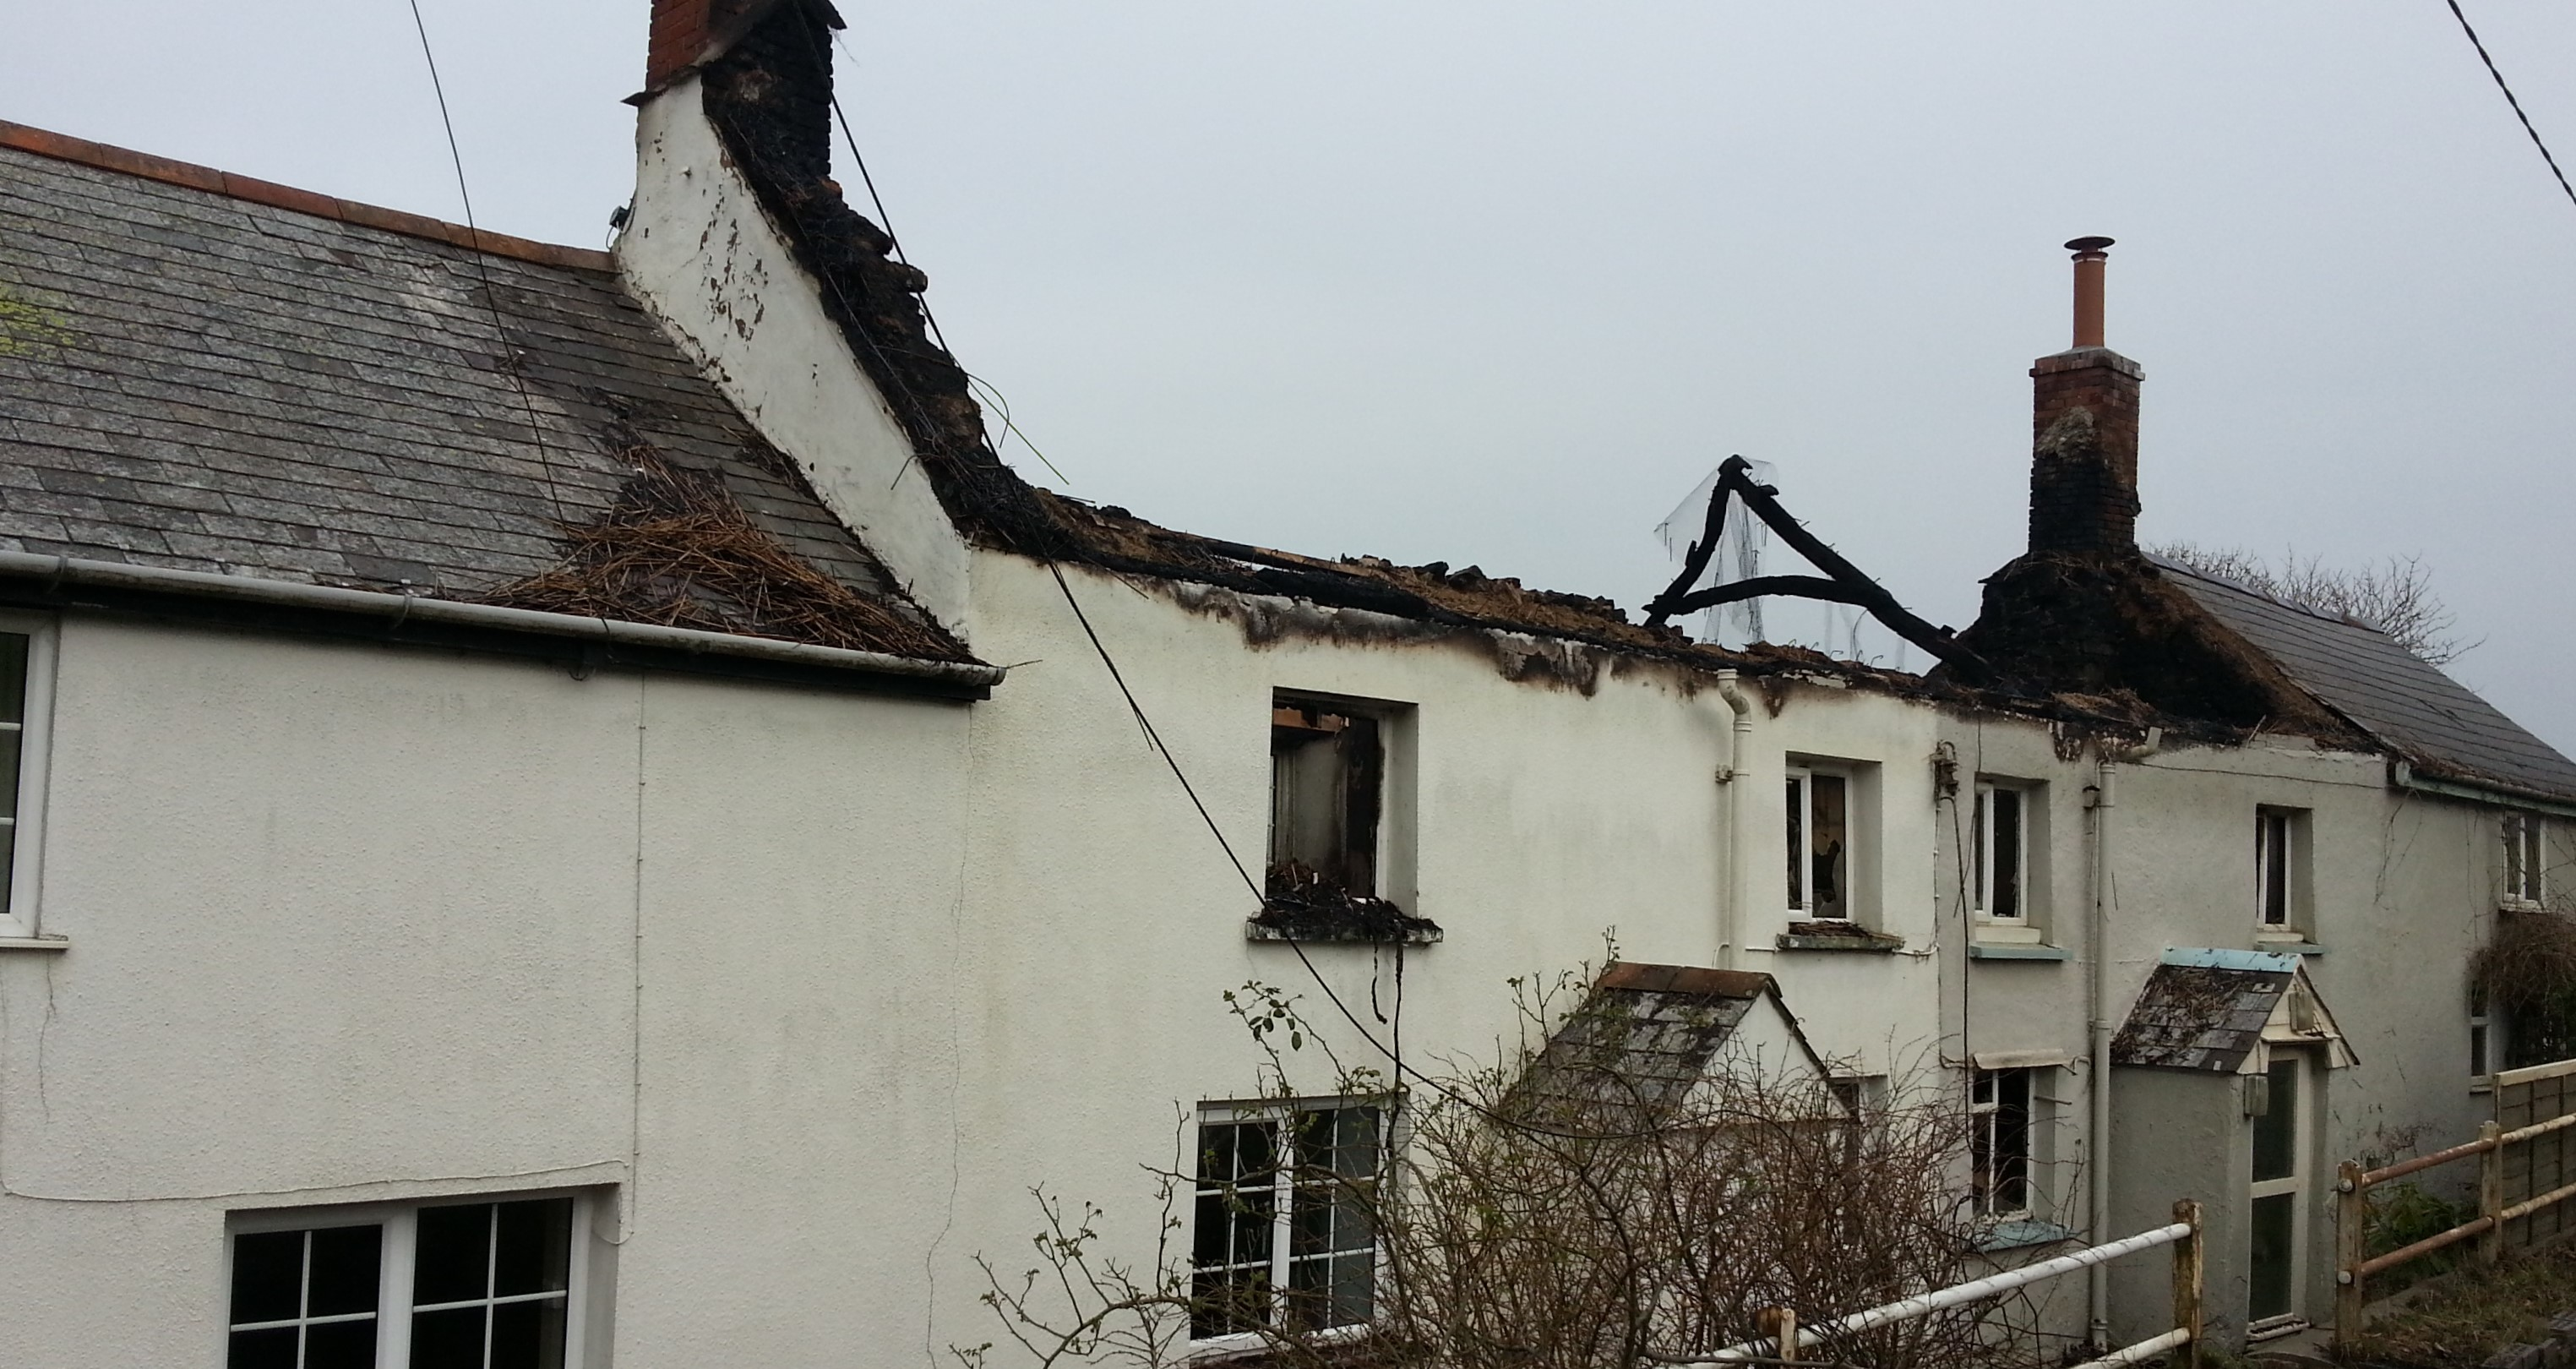 Devastating effects of fire damage on thatched property